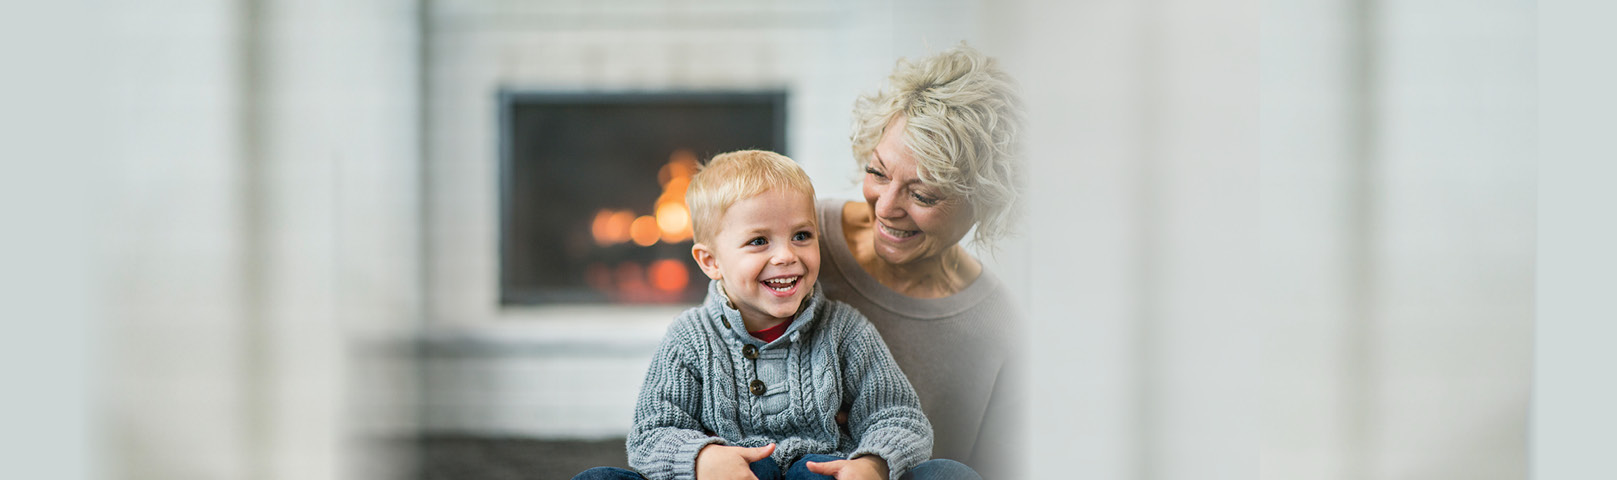 A mature woman and her grandson smile together with clarity in hearing and thinking